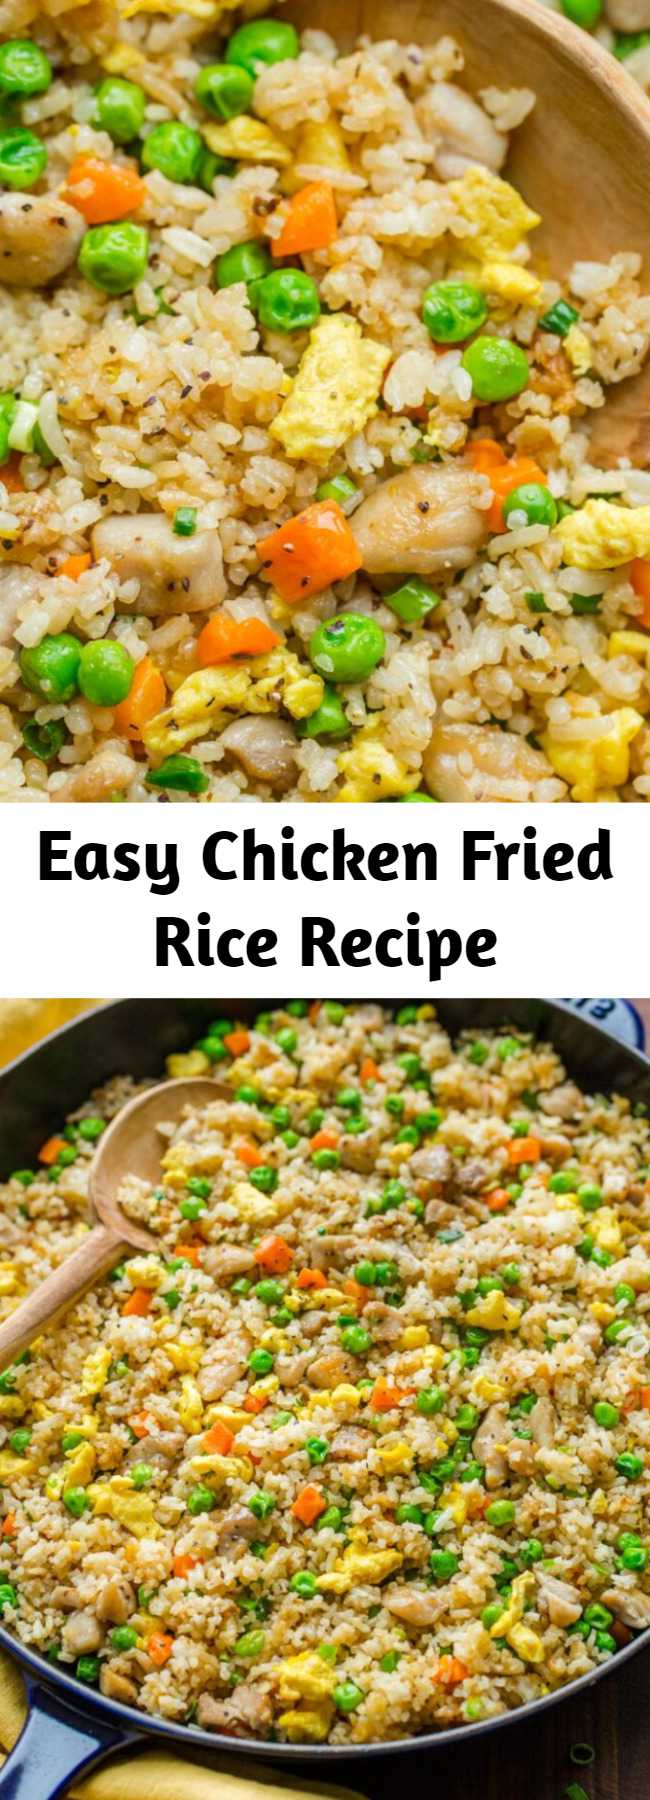 Easy Chicken Fried Rice Recipe - Chicken Fried Rice is one of our go-to EASY 30-minute meals. Fried Rice is perfect for meal prep and a genius way to use leftovers. It's actually even better with leftover rice. #chickenfriedrice #friedrice #chickenrecipes #30minutemeals #rice #friedricerecipe